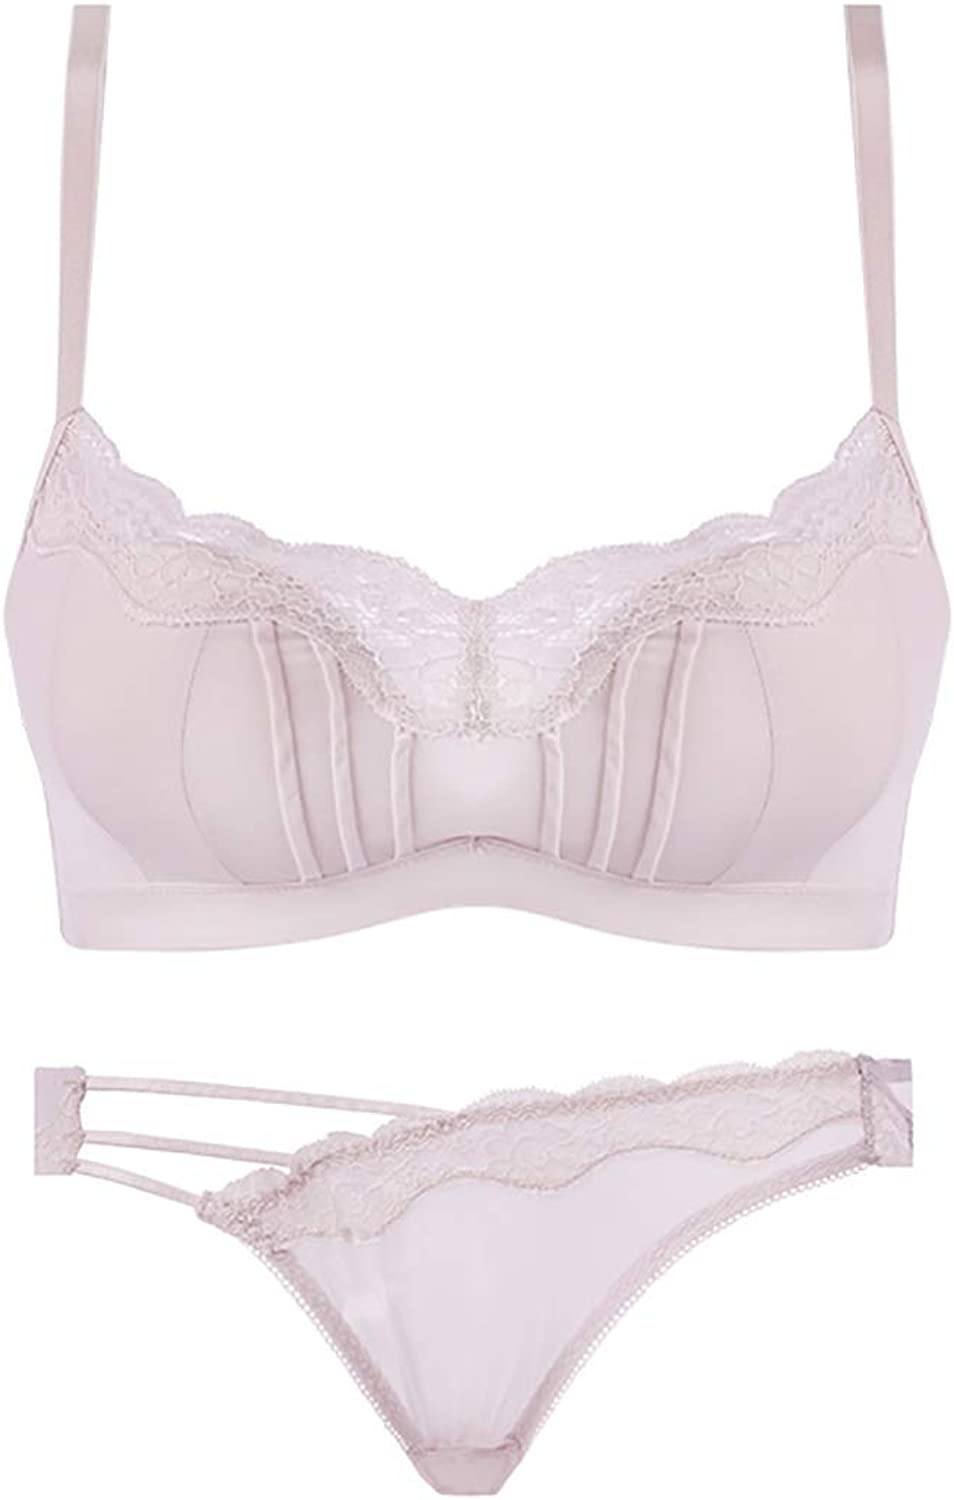 Brassiere Sets Sexy deep V Gather lace Embroidery Pattern, no Steel Ring, Sponge, Adjustable Chest Type, Four Rows of Three Buckles Cloth (Size   Pink)